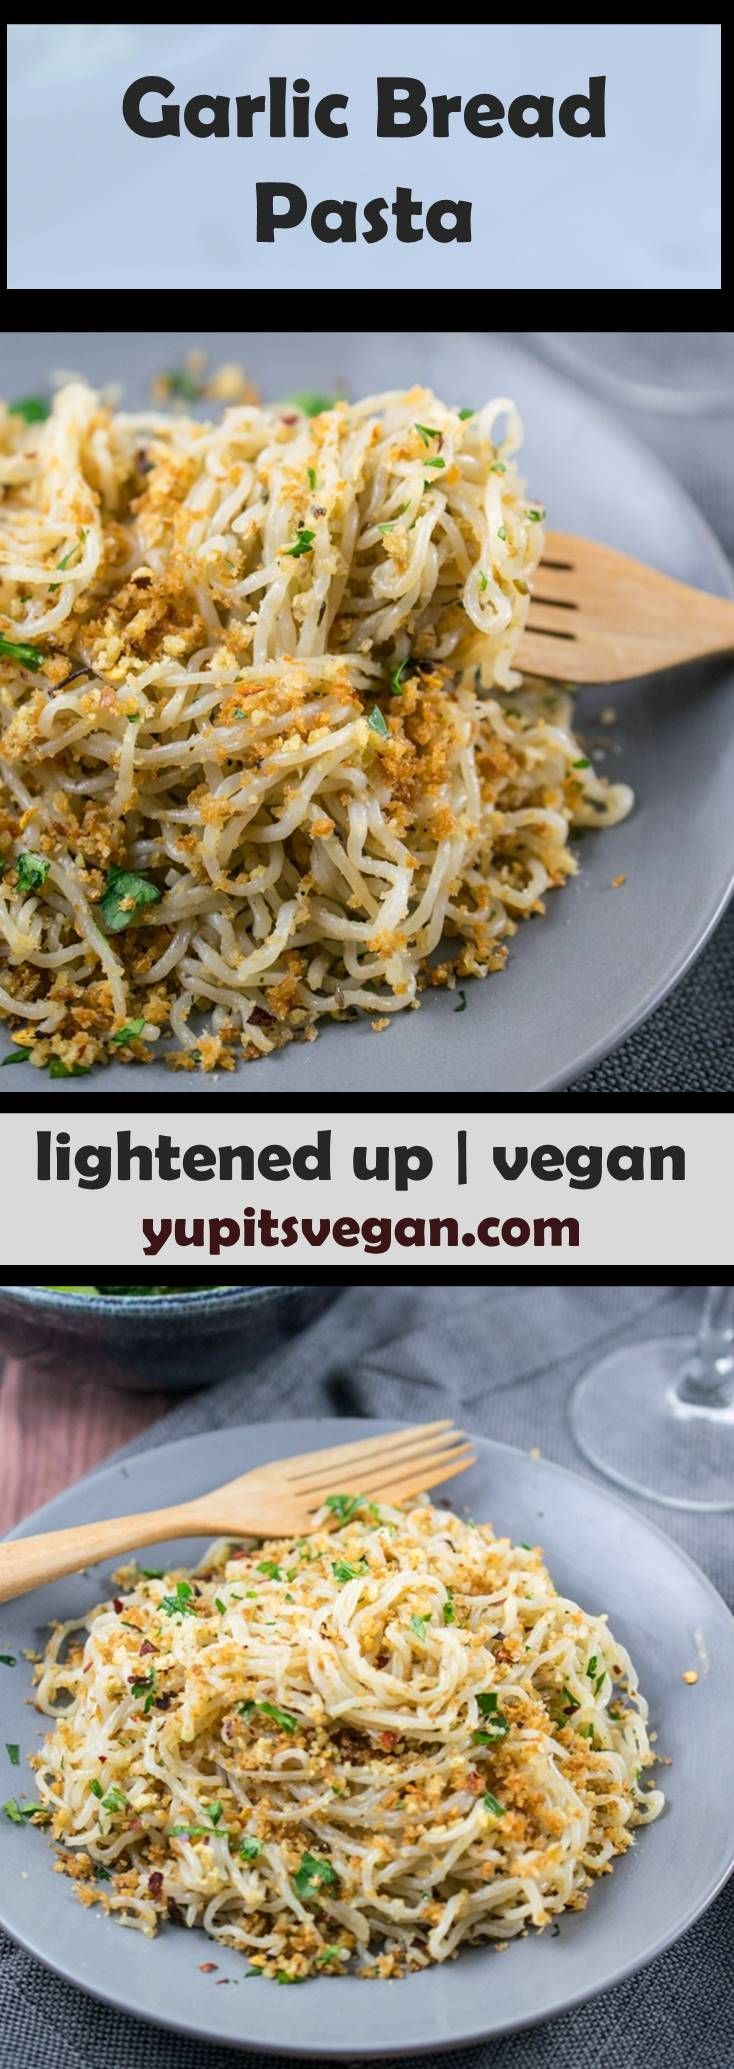 Garlic Bread Pasta: Tender spaghetti tossed with crispy garlic-infused breadcrumbs in a light olive oil sauce. The flavors of garlic bread, but lightened up using zero-calorie tofu shirataki noodles! Gluten-free, grain-free option (using walnuts), vegan recipe. via @yupitsvegan